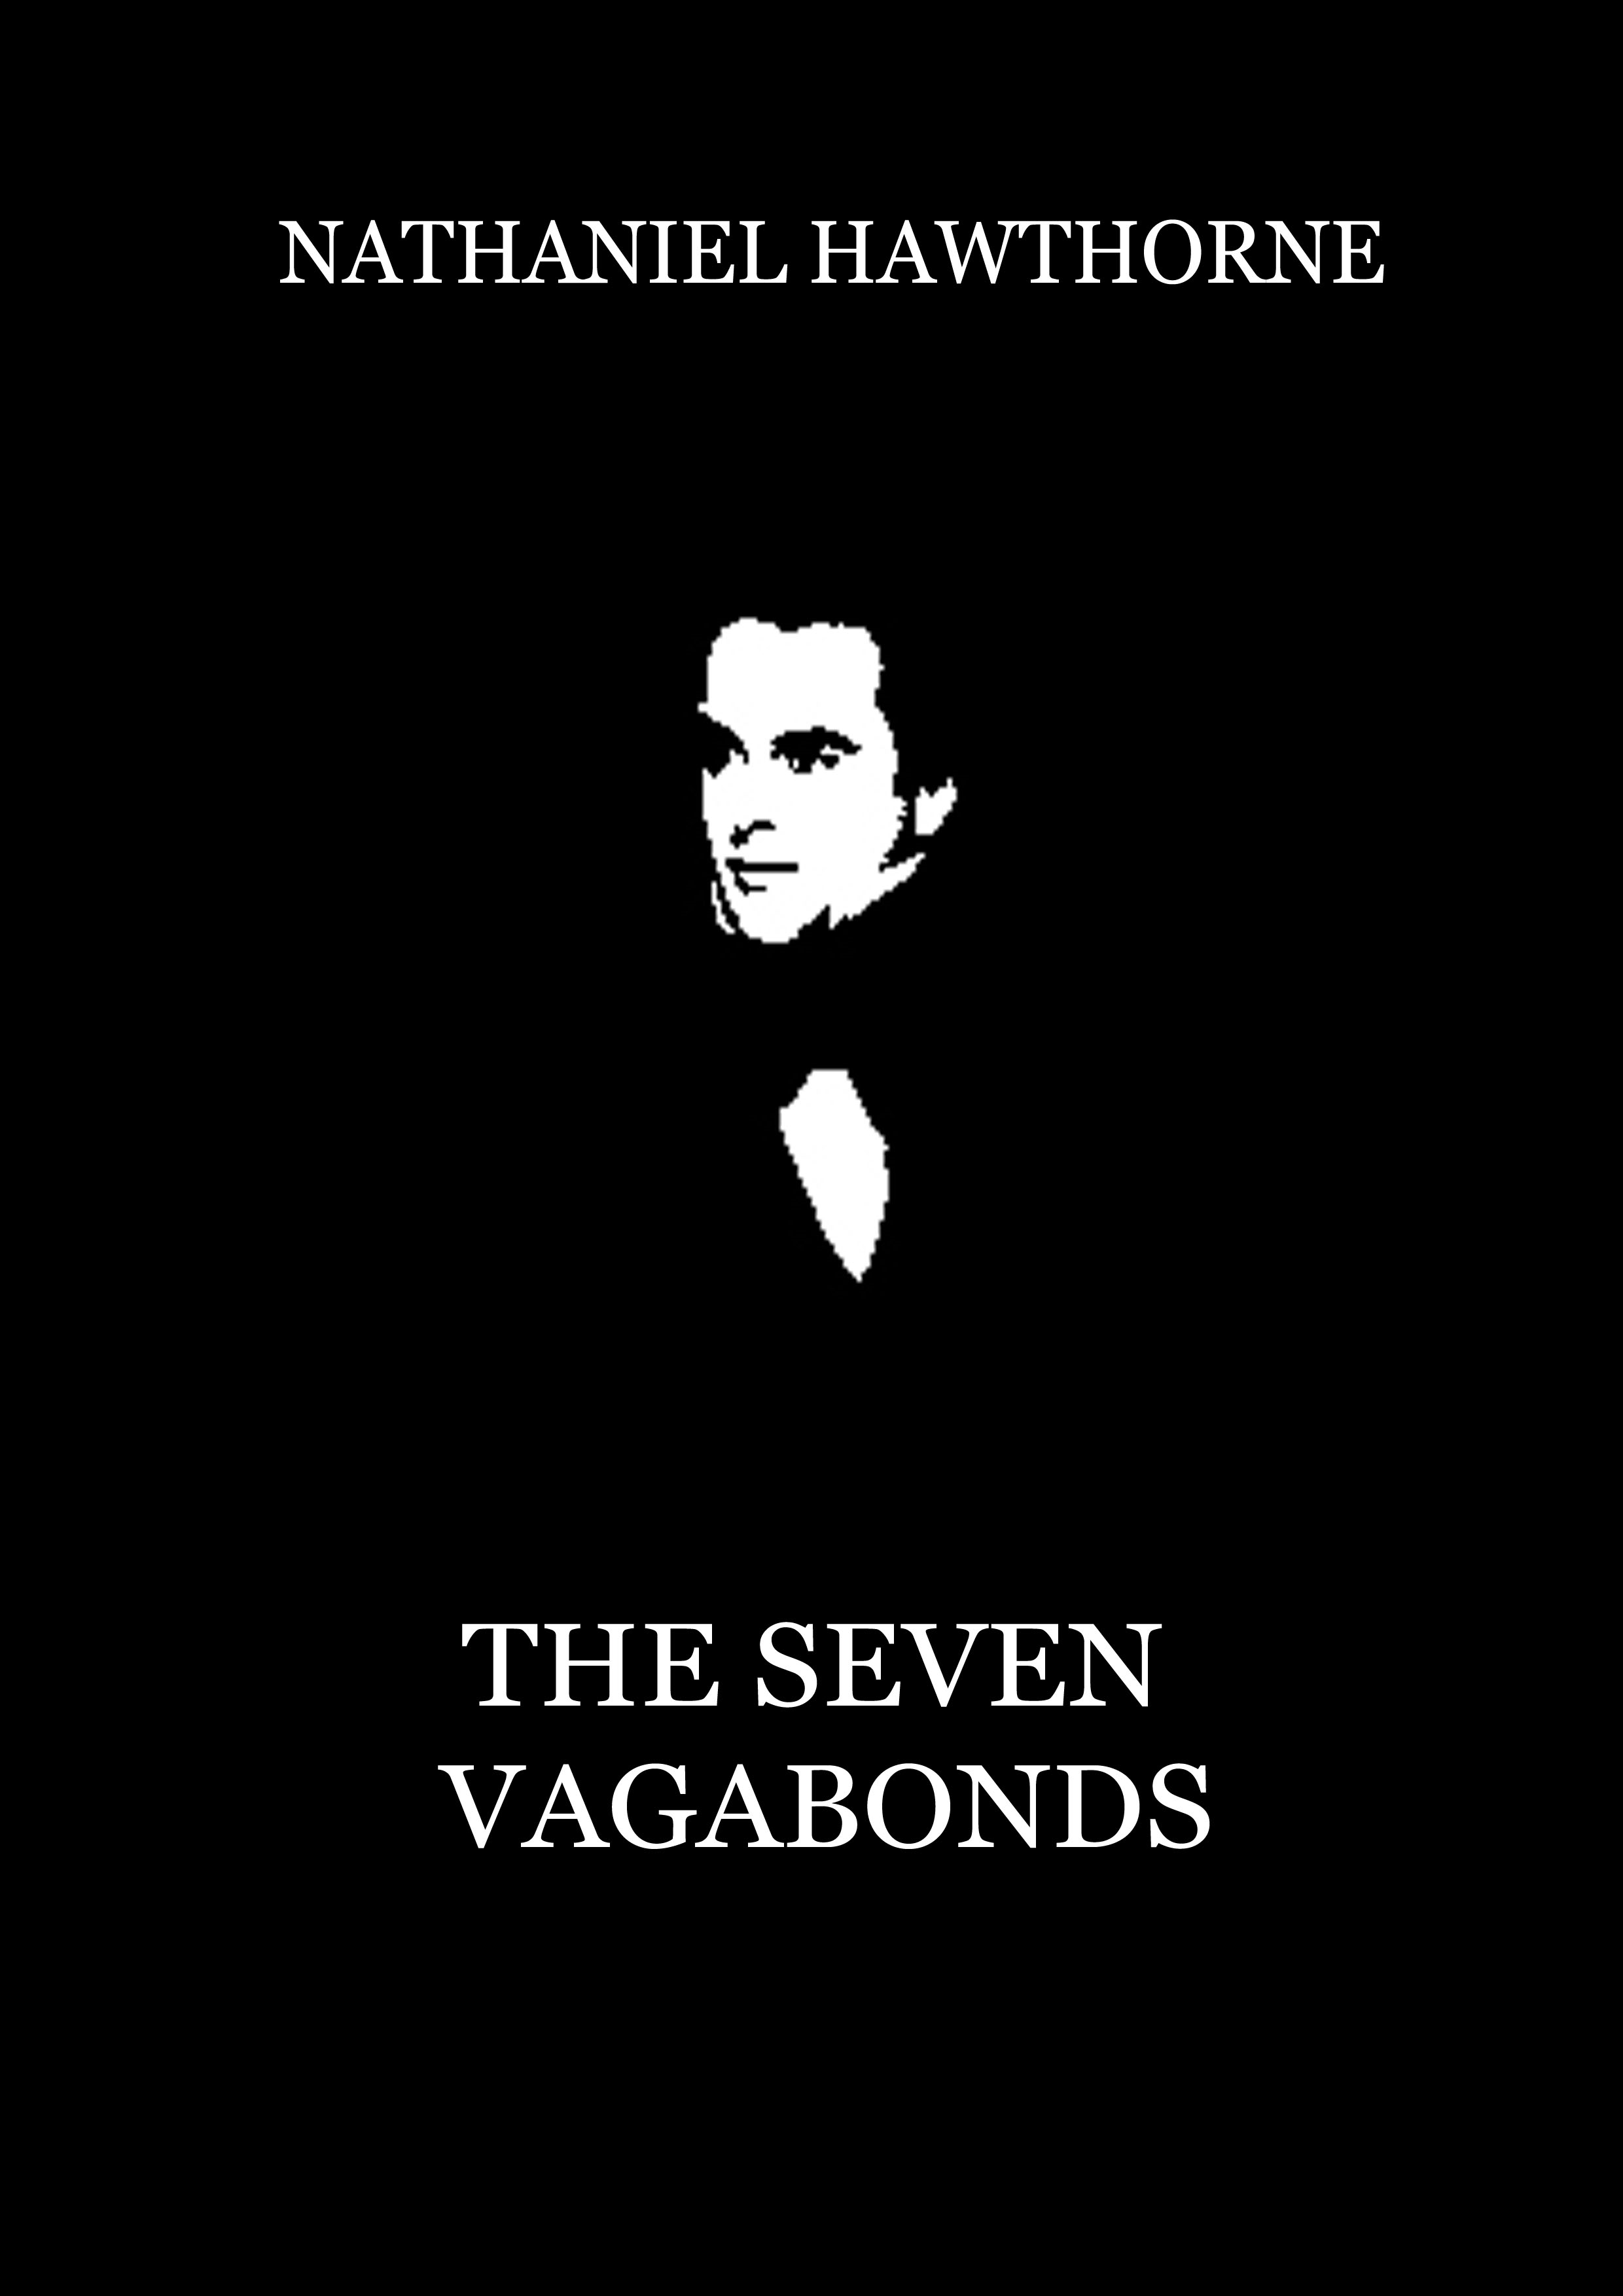 Nathaniel Hawthorne - The Seven Vagabonds